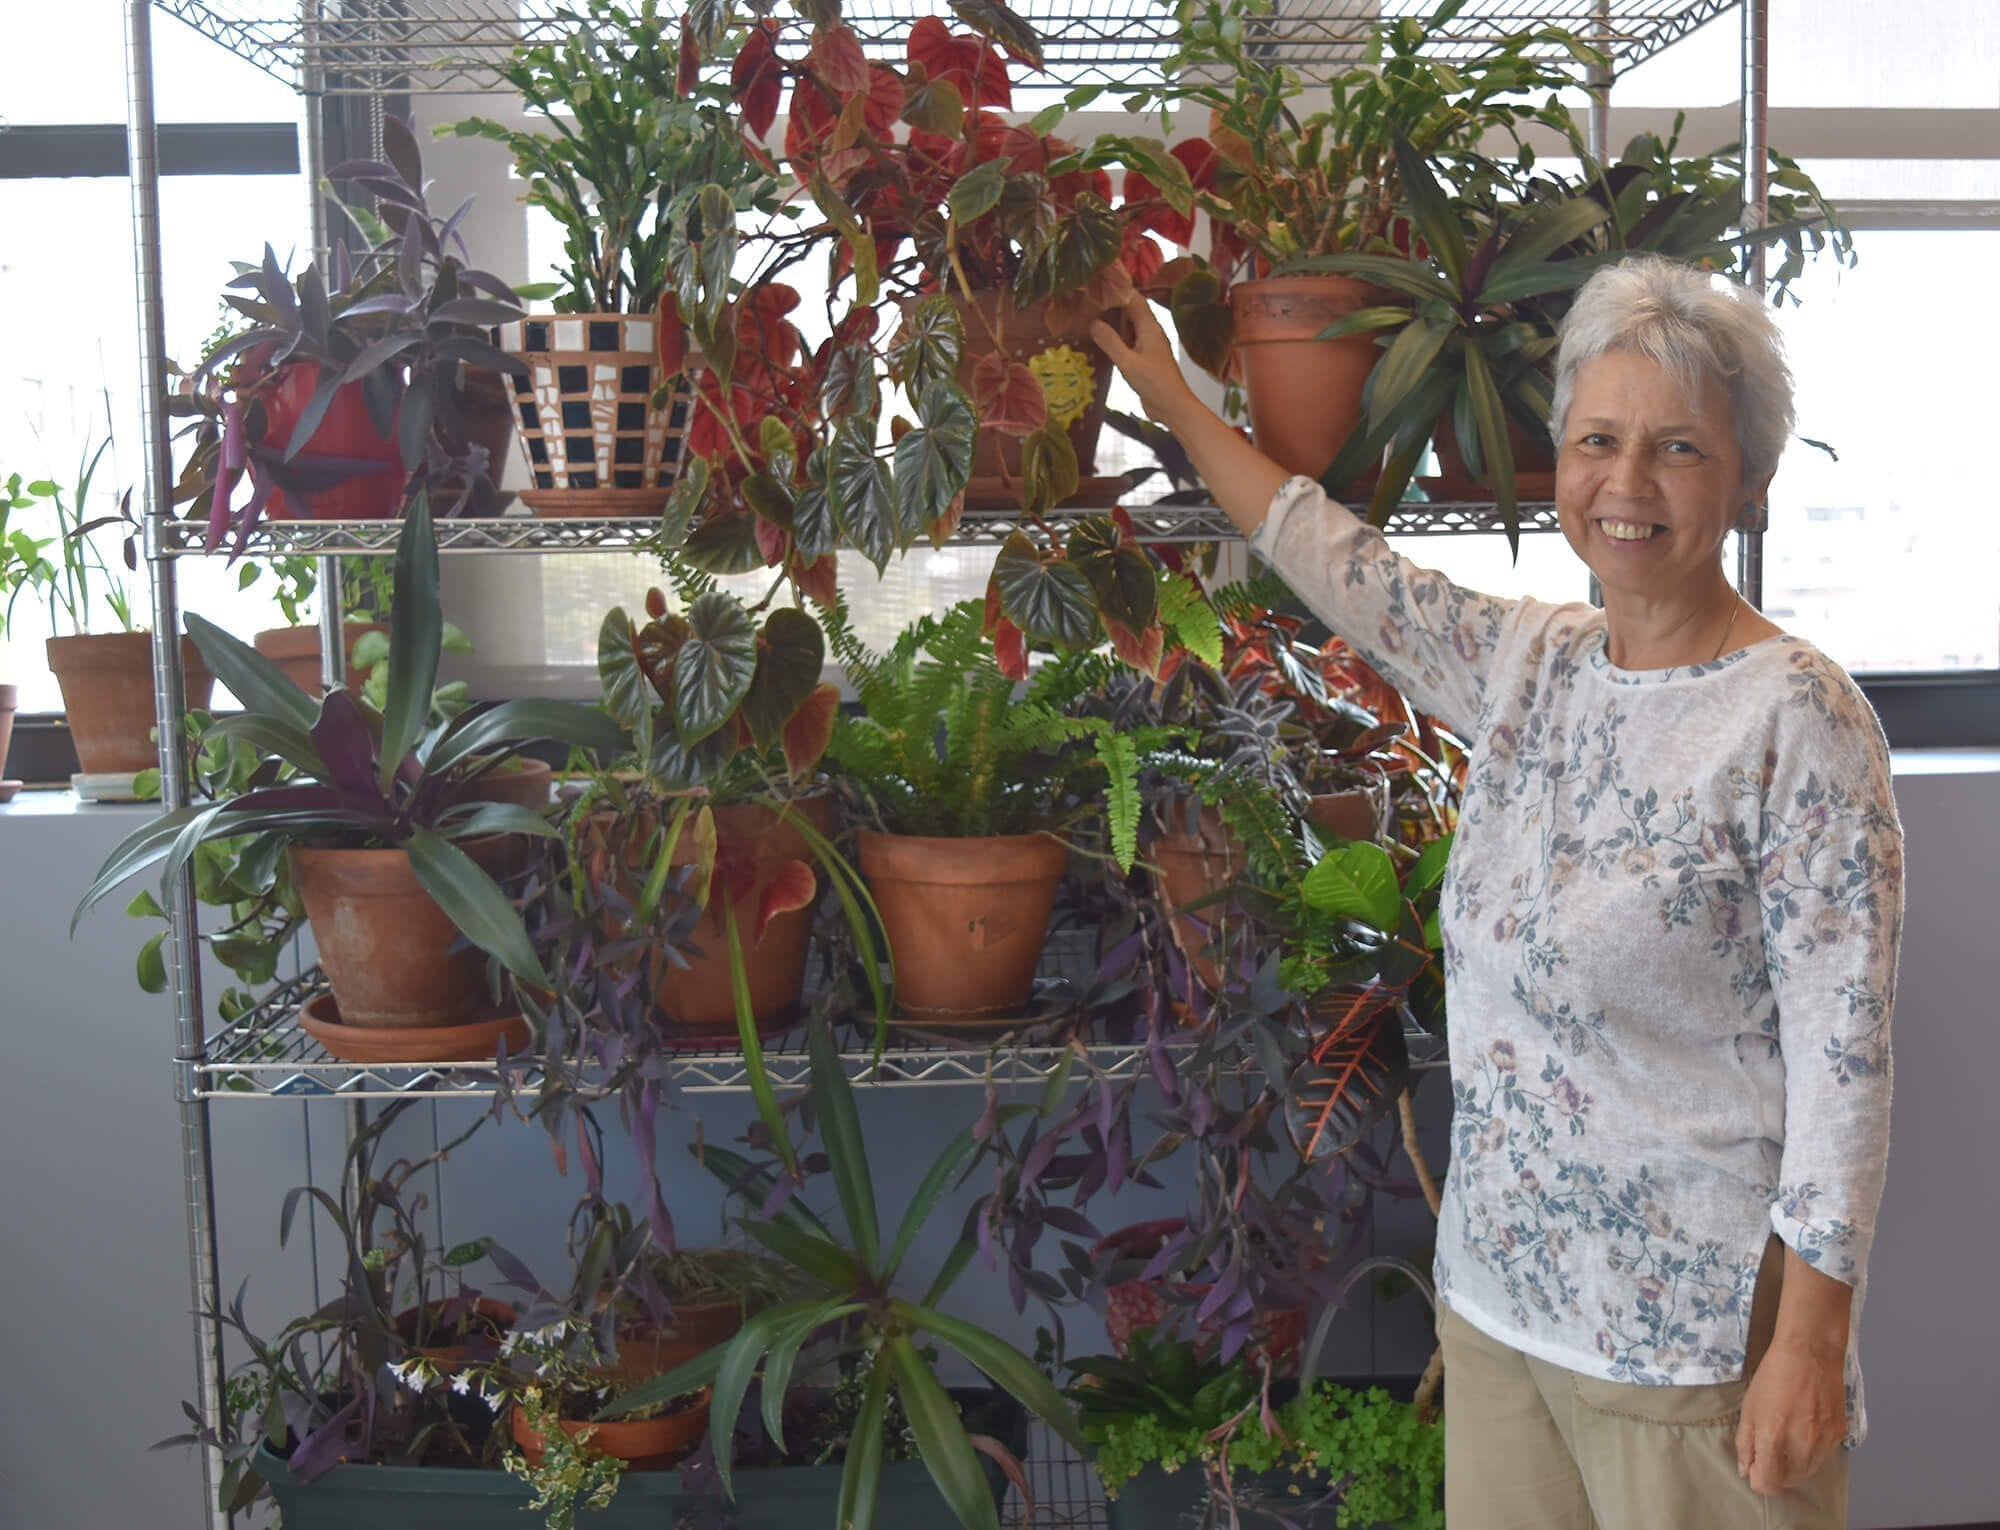 Shelves of flourishing plants about at the New York League